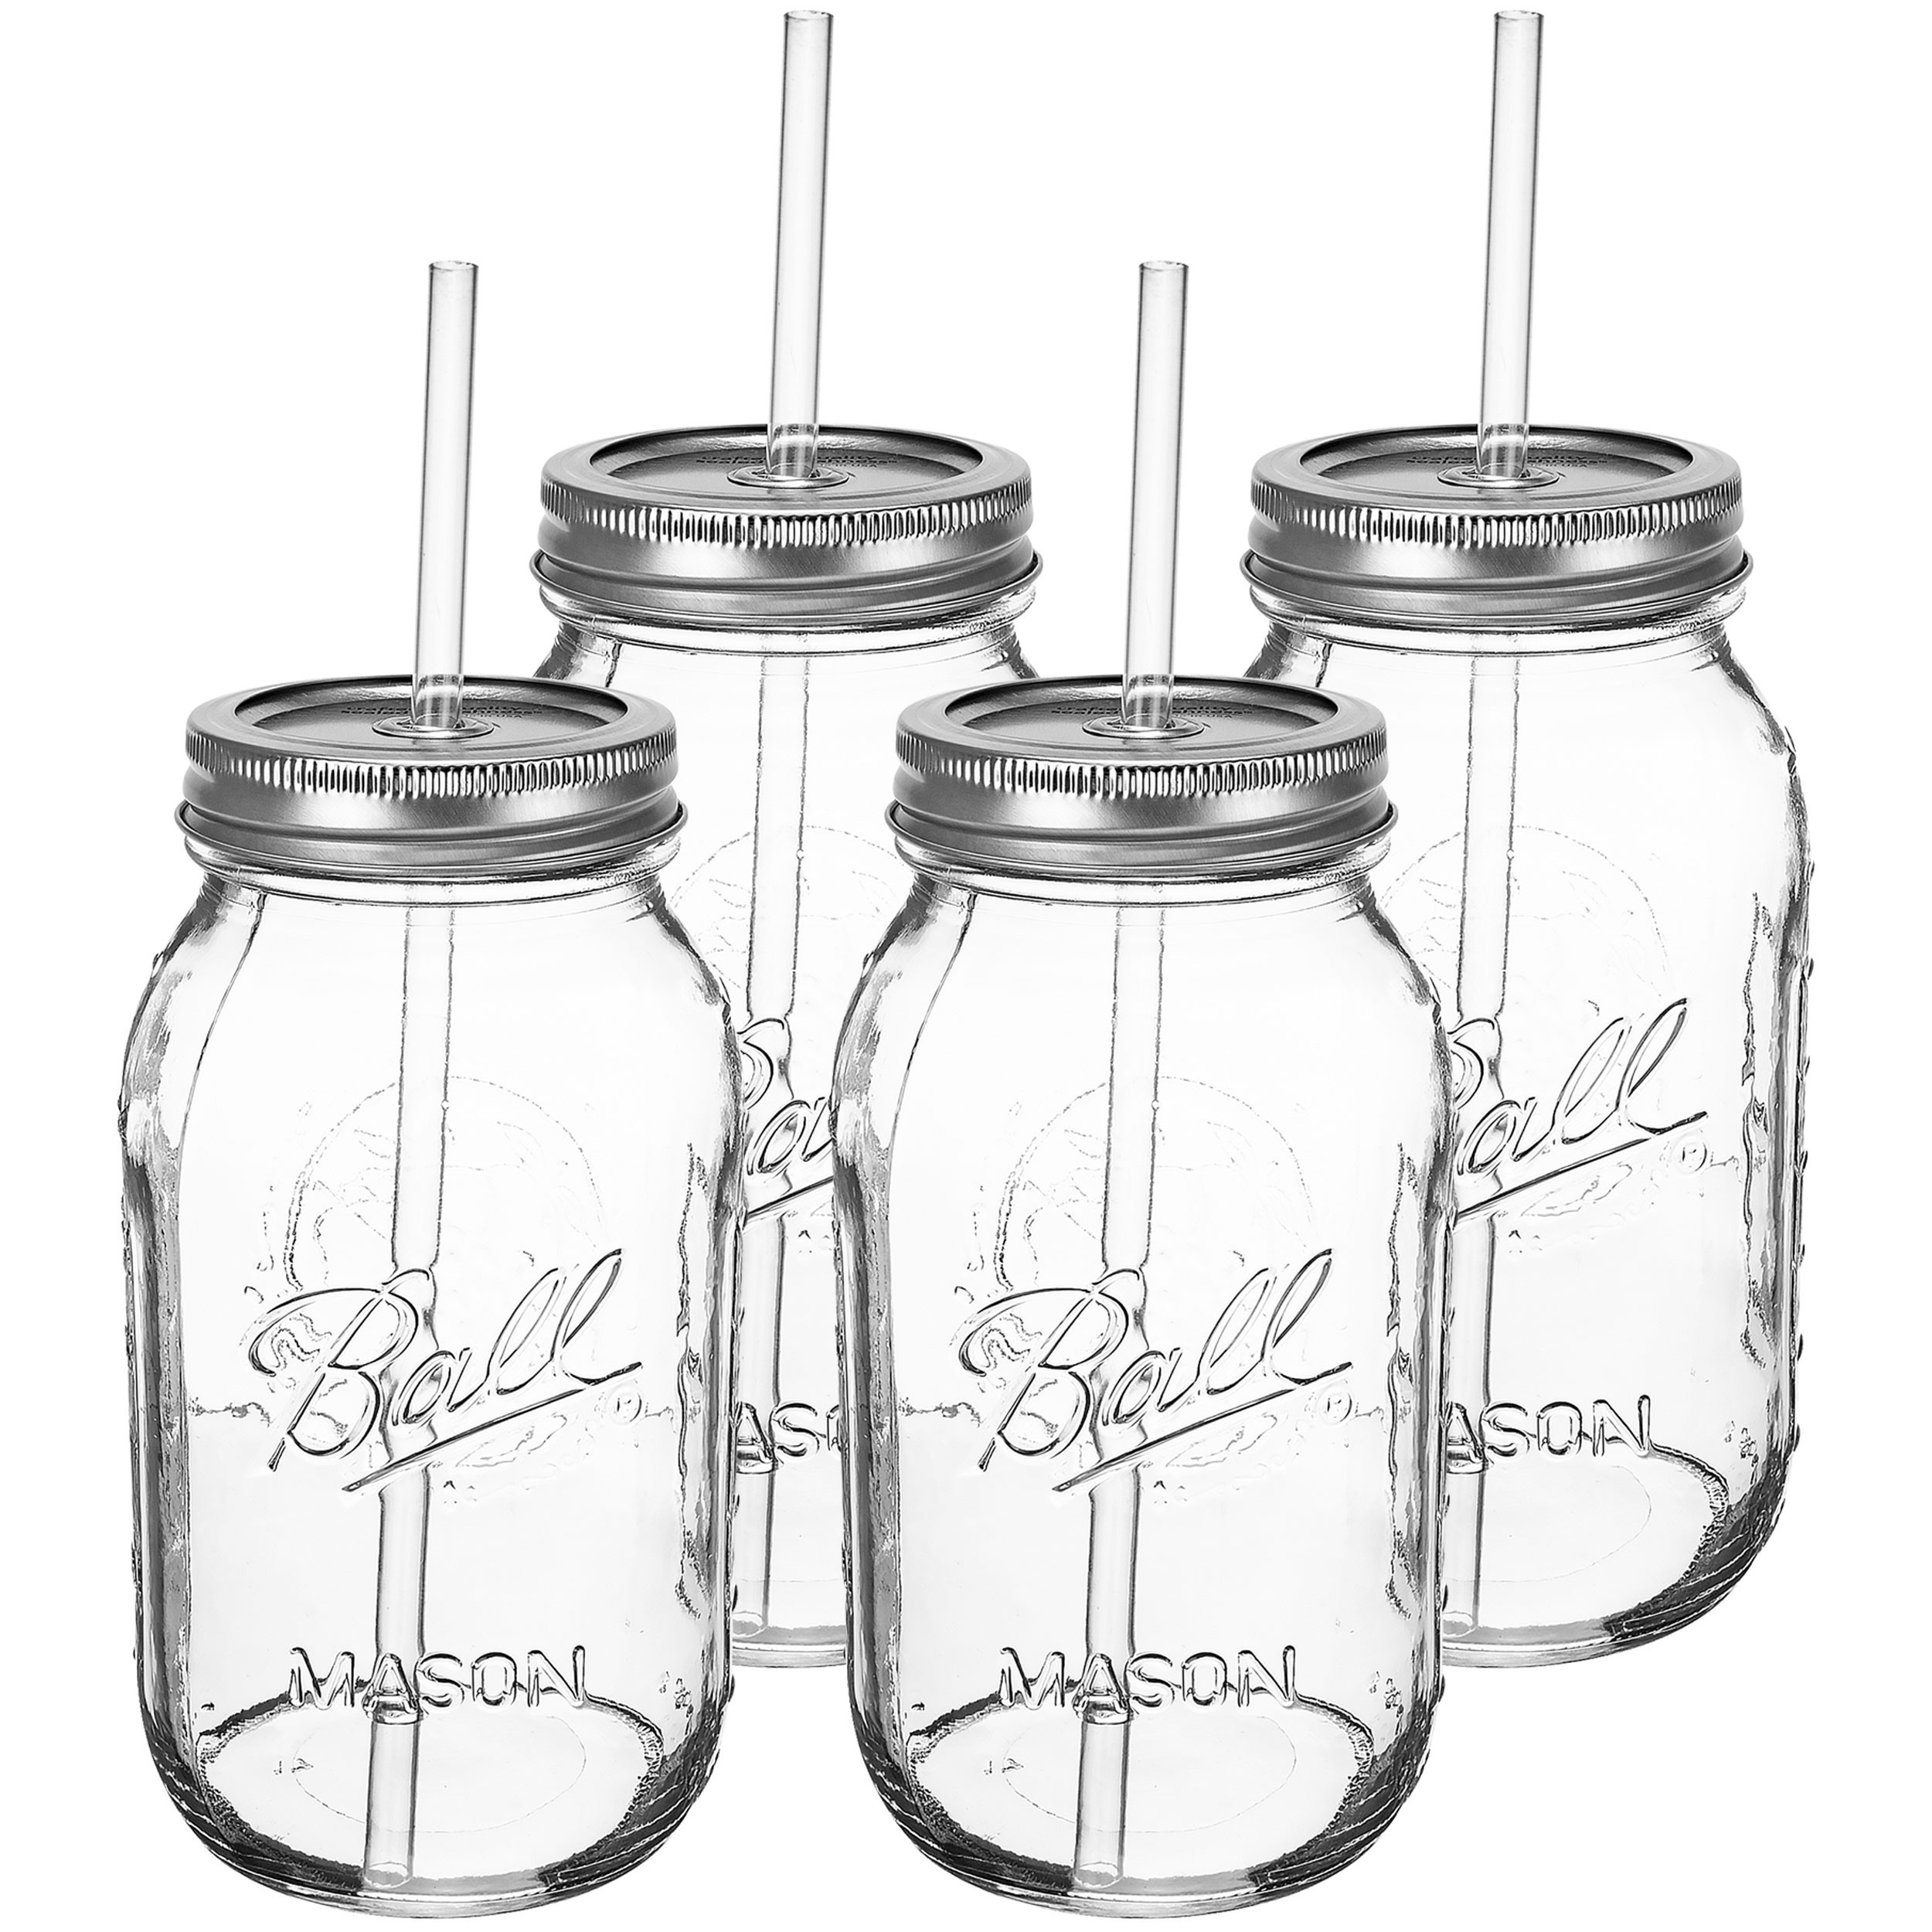 Redneck Guzzler Drinking Sipping Jar 32oz Ball Mason Jar w/ Acrylic Straw 4 Pack